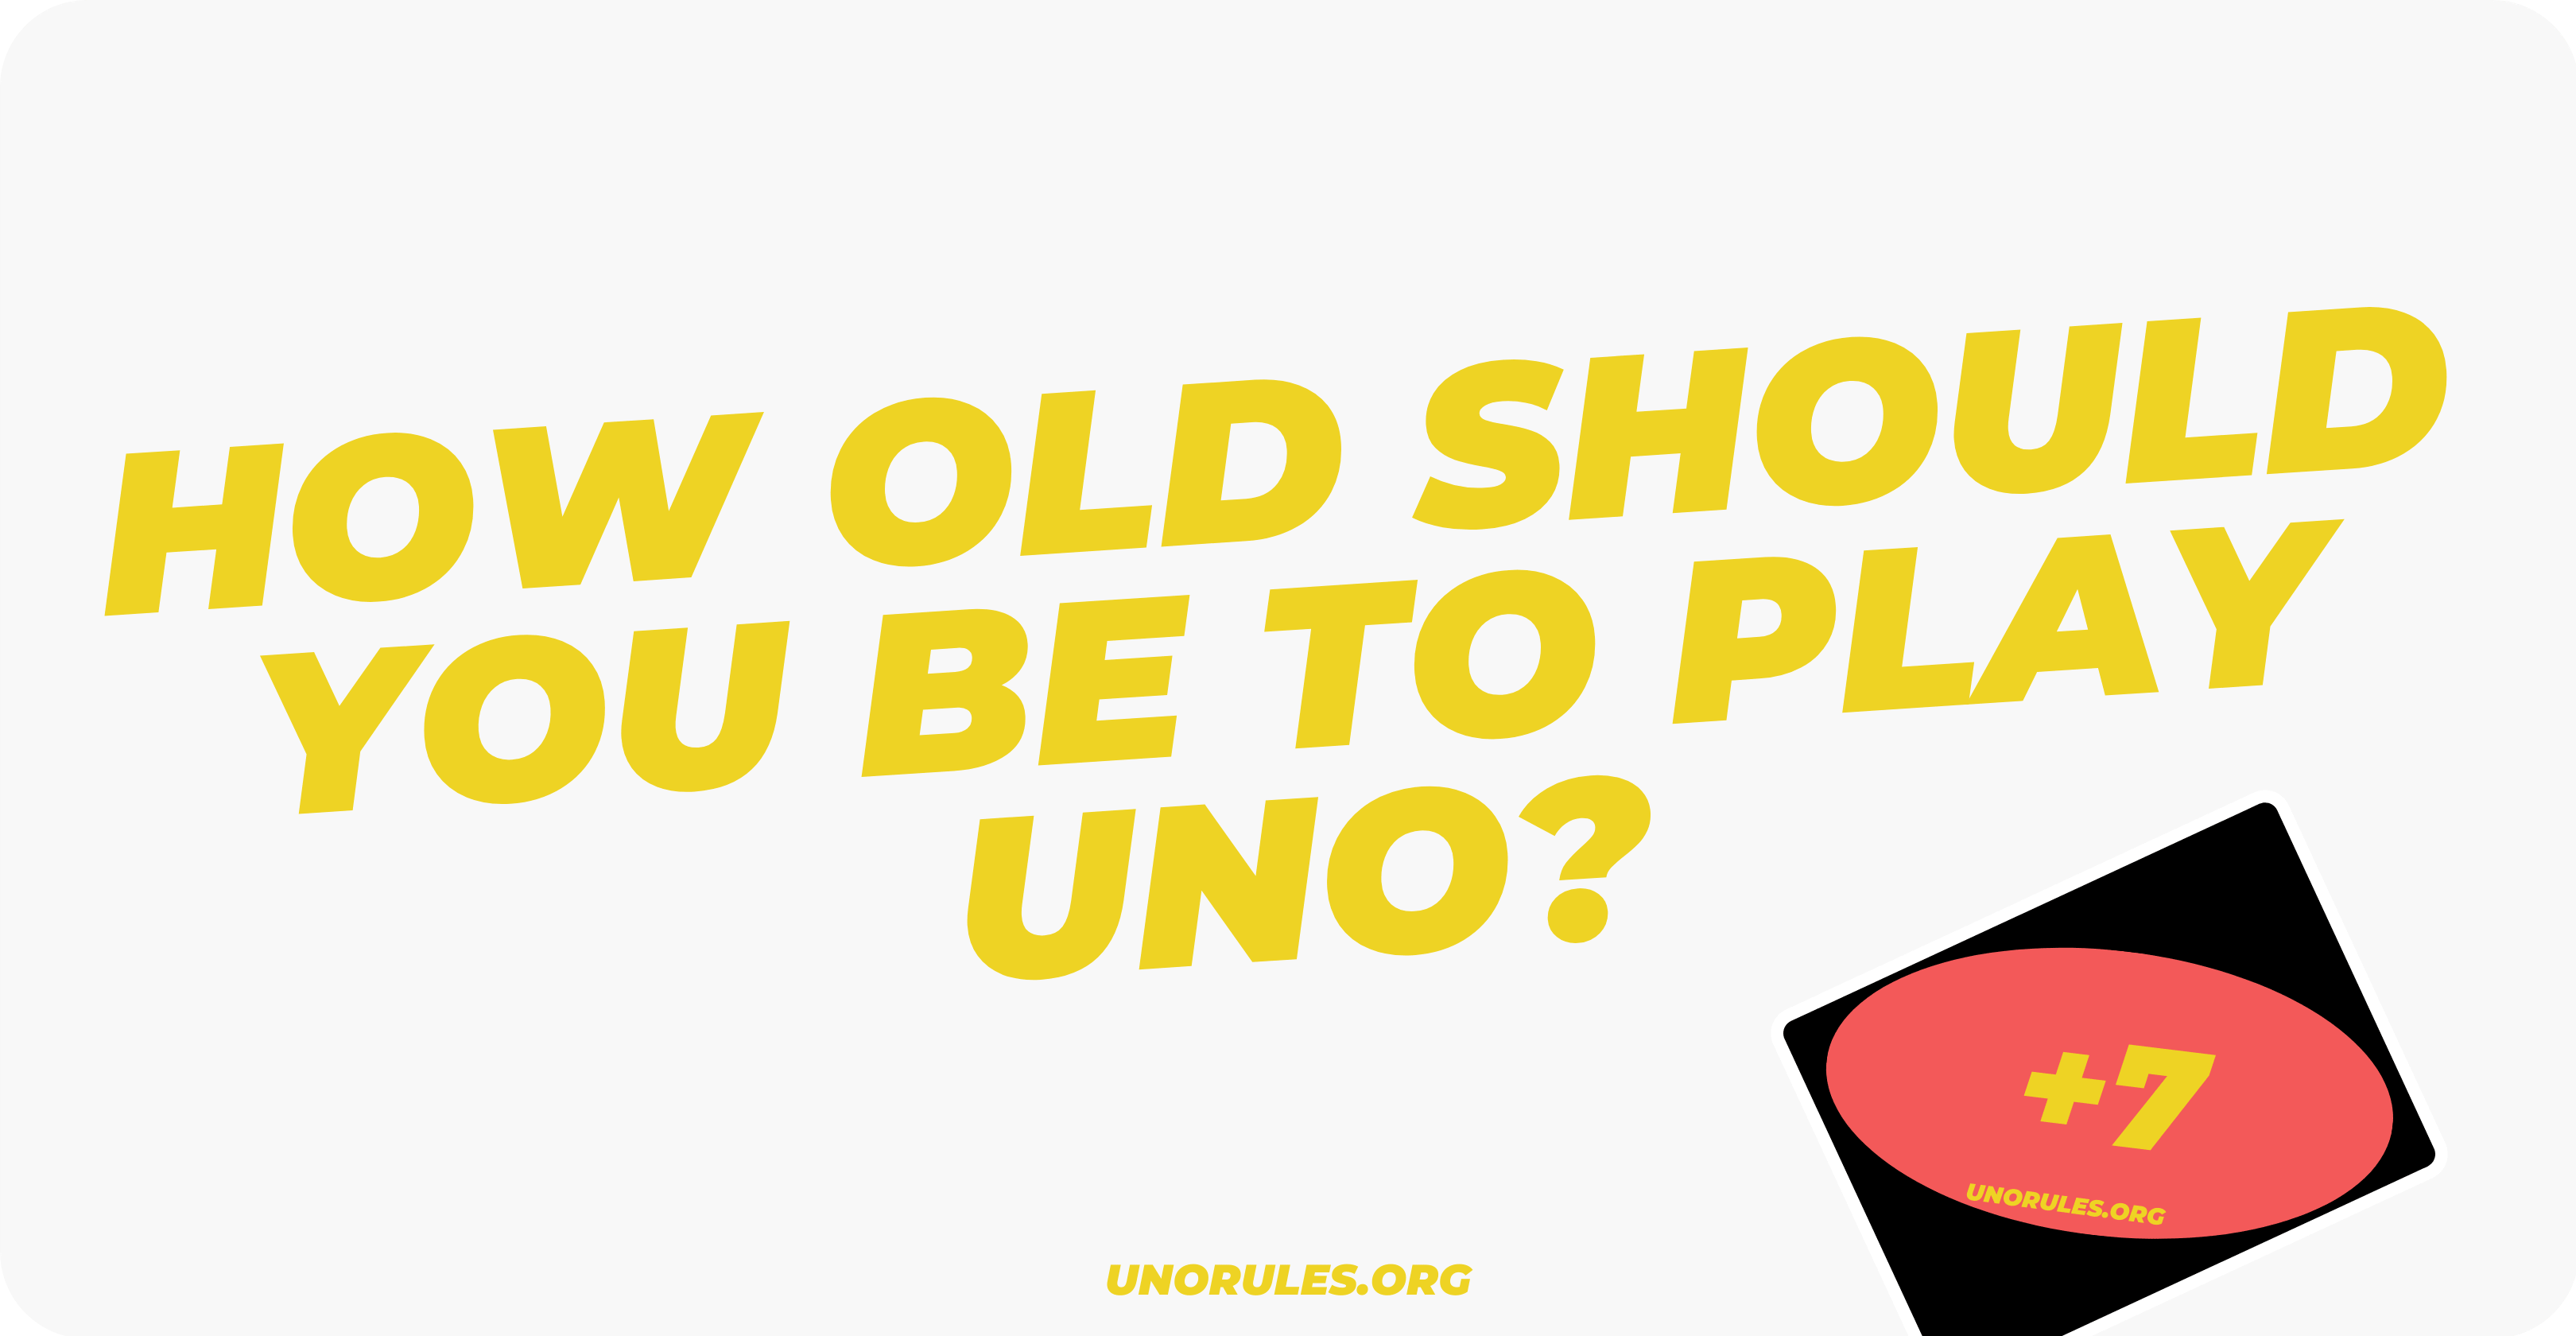 How old should you be to play Uno